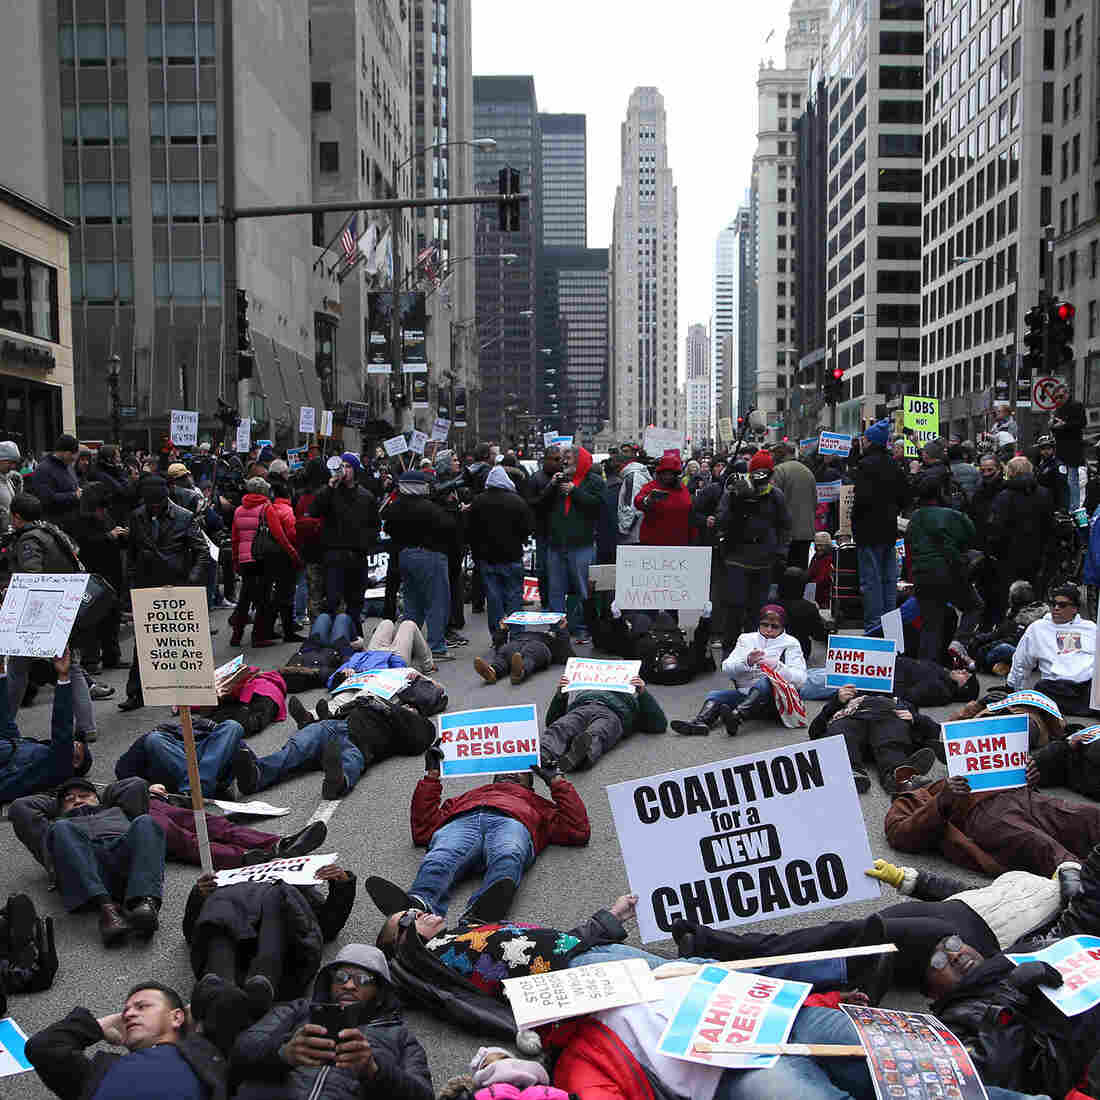 Magnificent Mile Protests Disrupt But Don't Deter Holiday Shopping